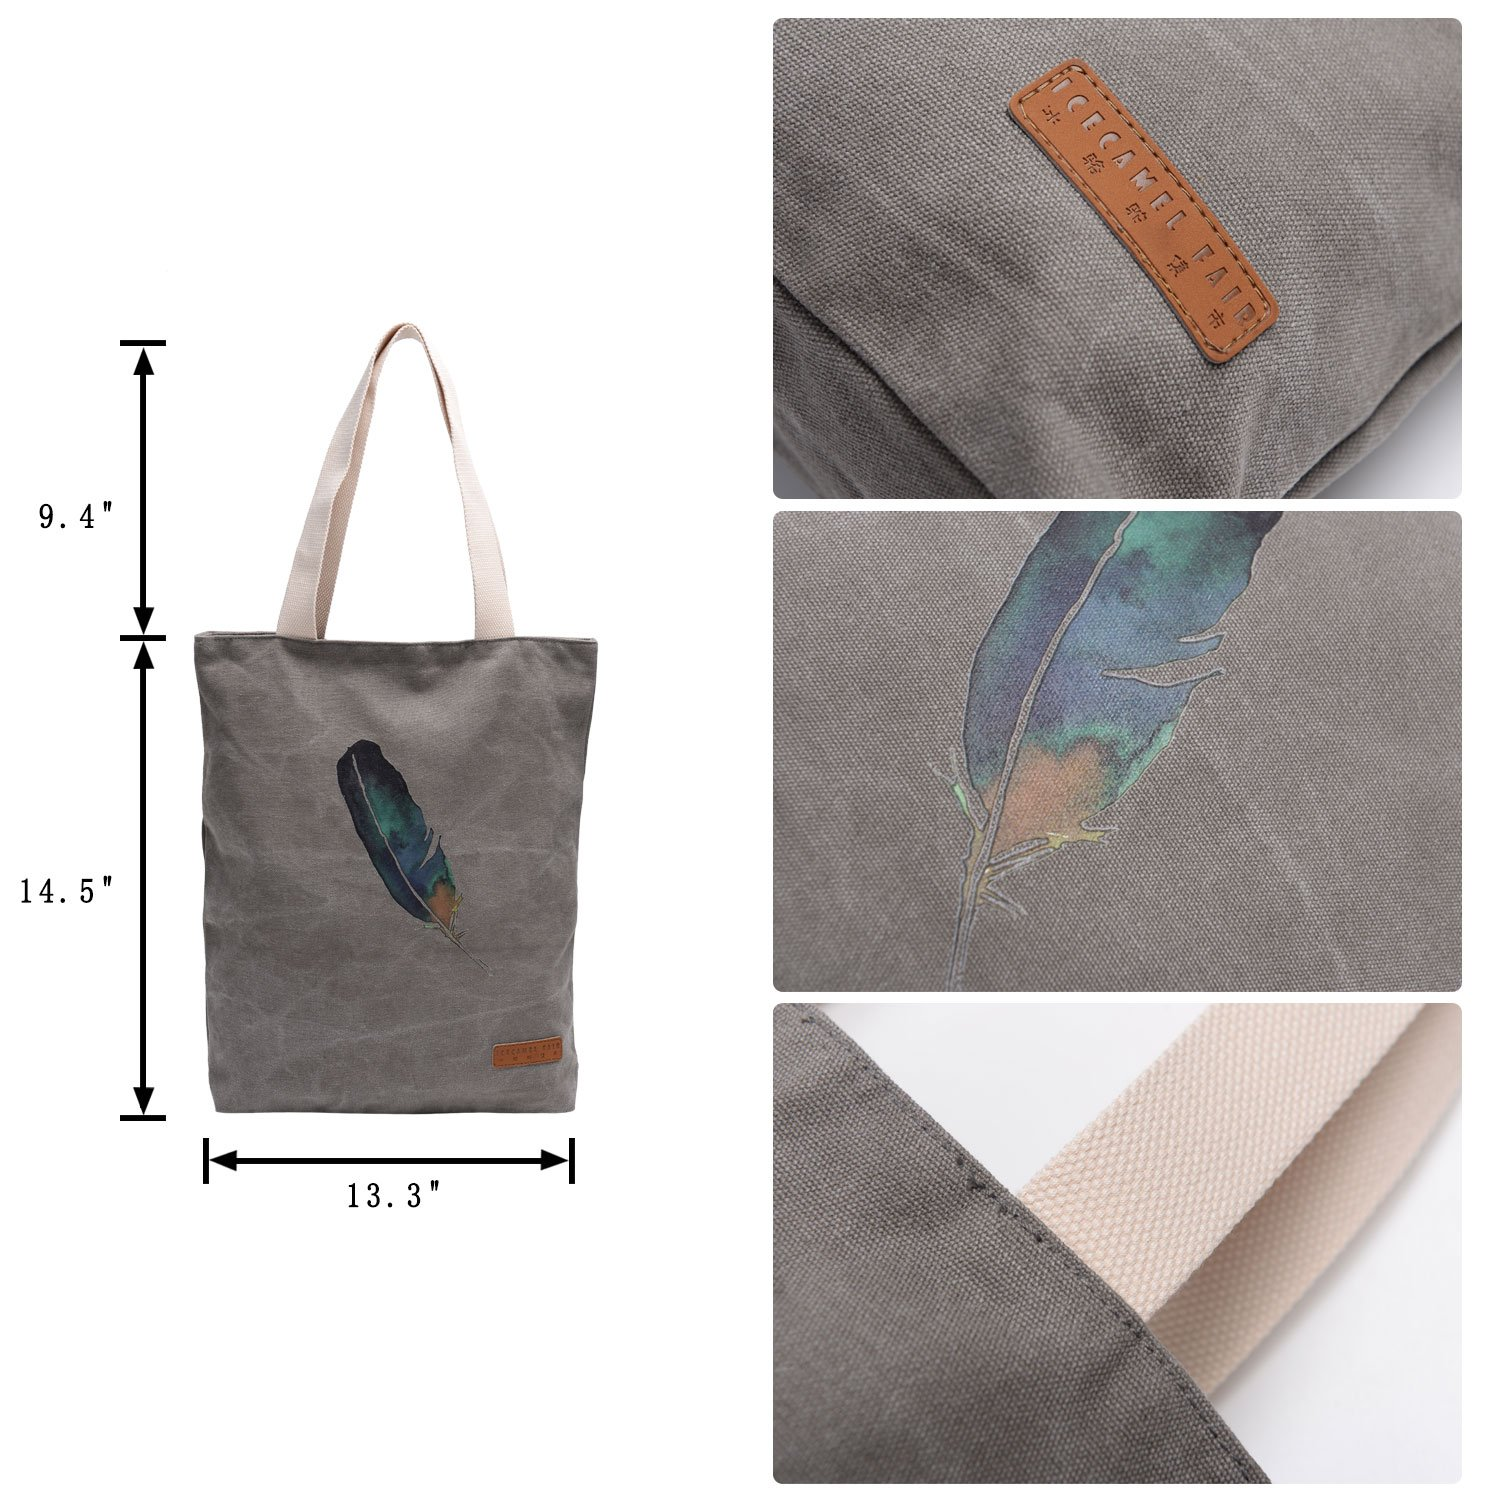 cd17a1f91 Amazon.com: Vintga Simple Korean Large Heavy Duty Canvas Tote Bag Printed  Design,Perfect for Shopping, Laptop, School Books (Cold Gray,A Feather Gray  Bag ...